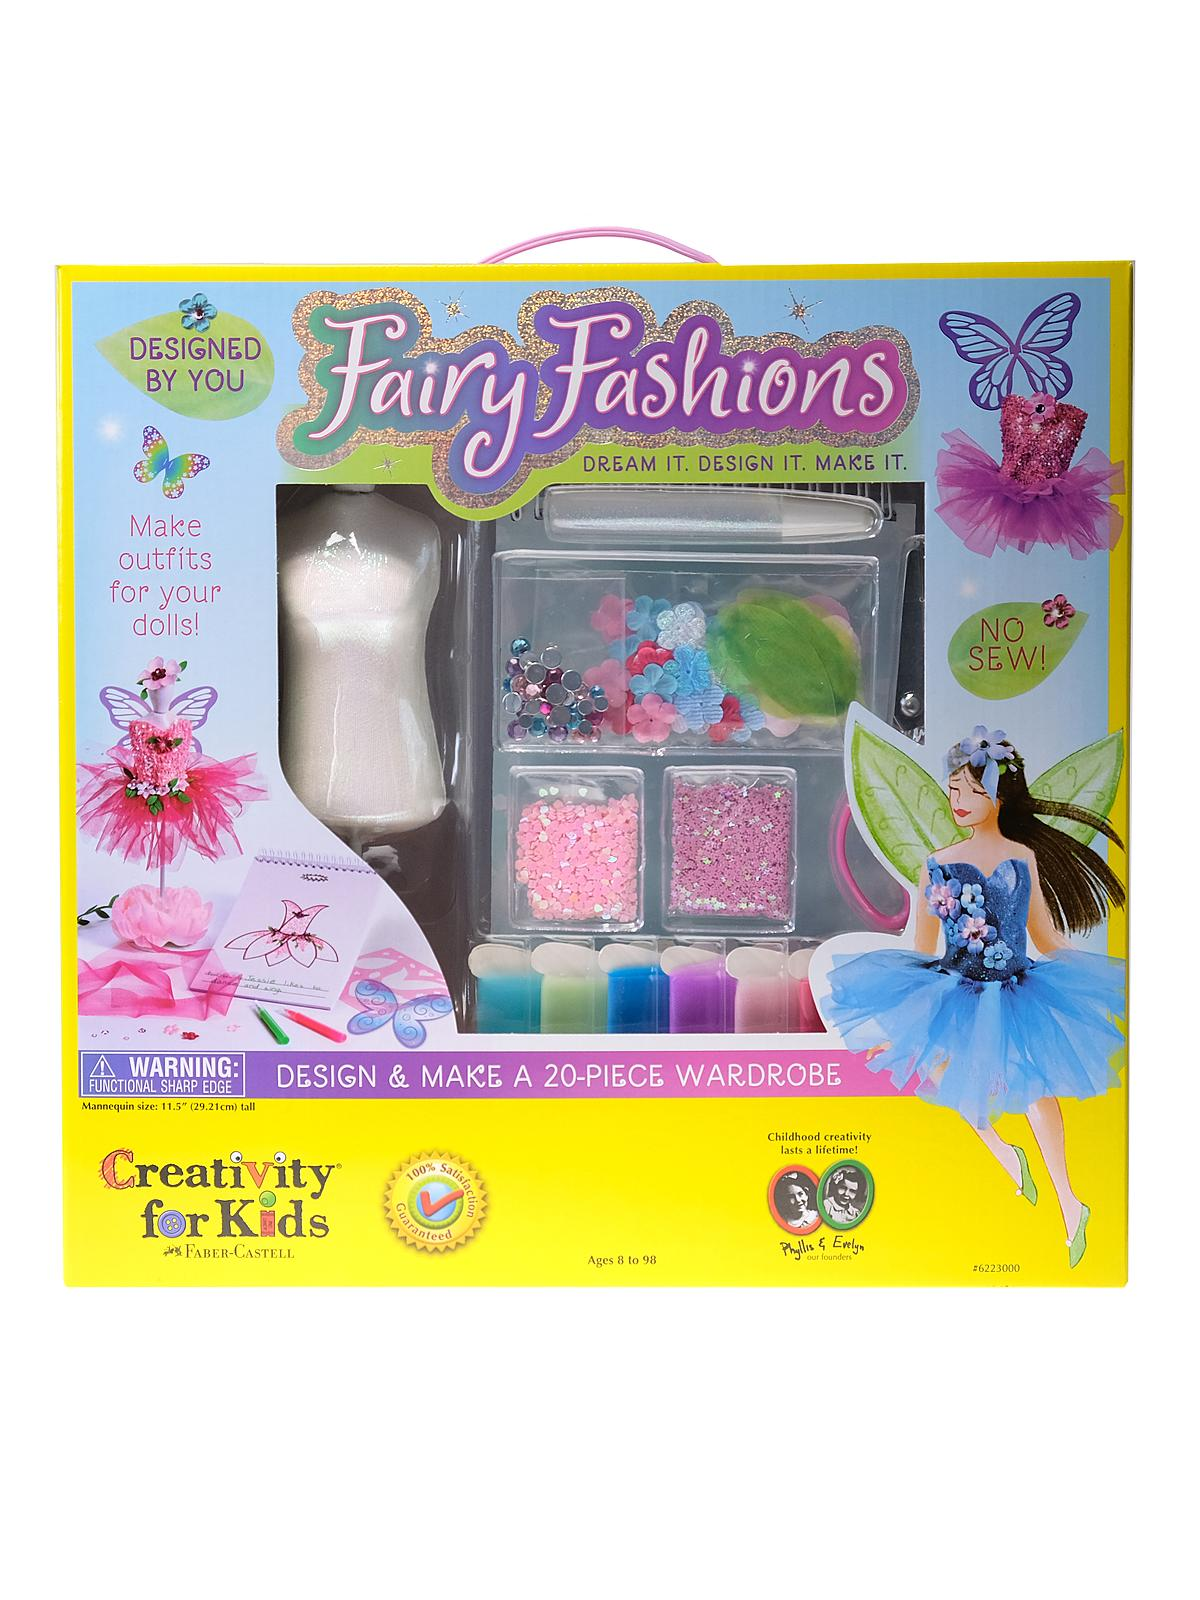 Creativity For Kids - Designed by You Fairy Fashions